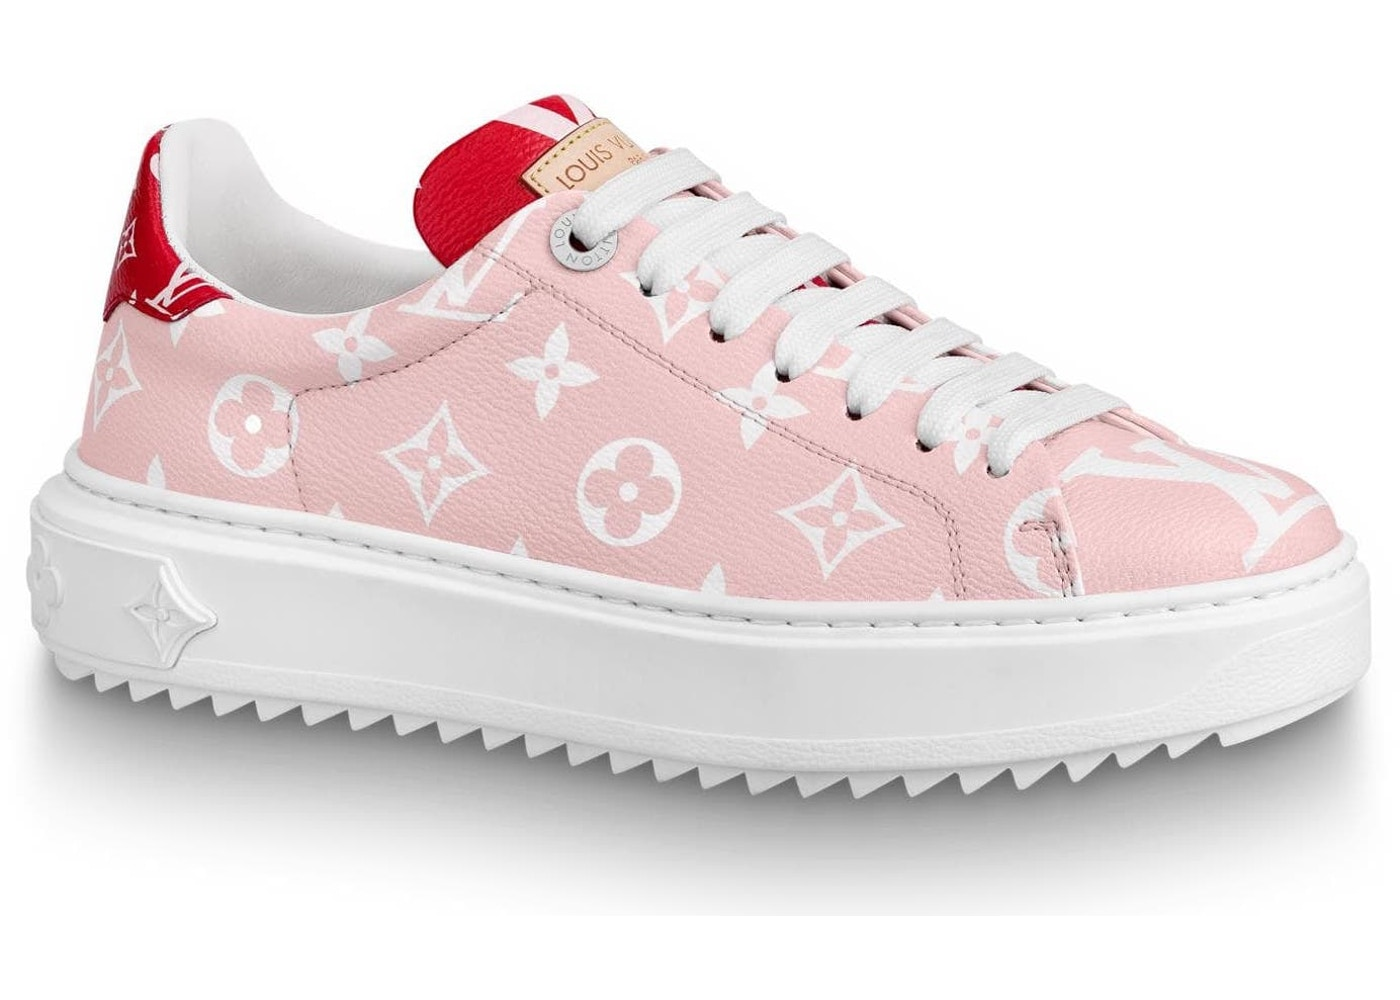 23aeebcf13 Louis Vuitton Trainer Time Out Monogram Pink (W)